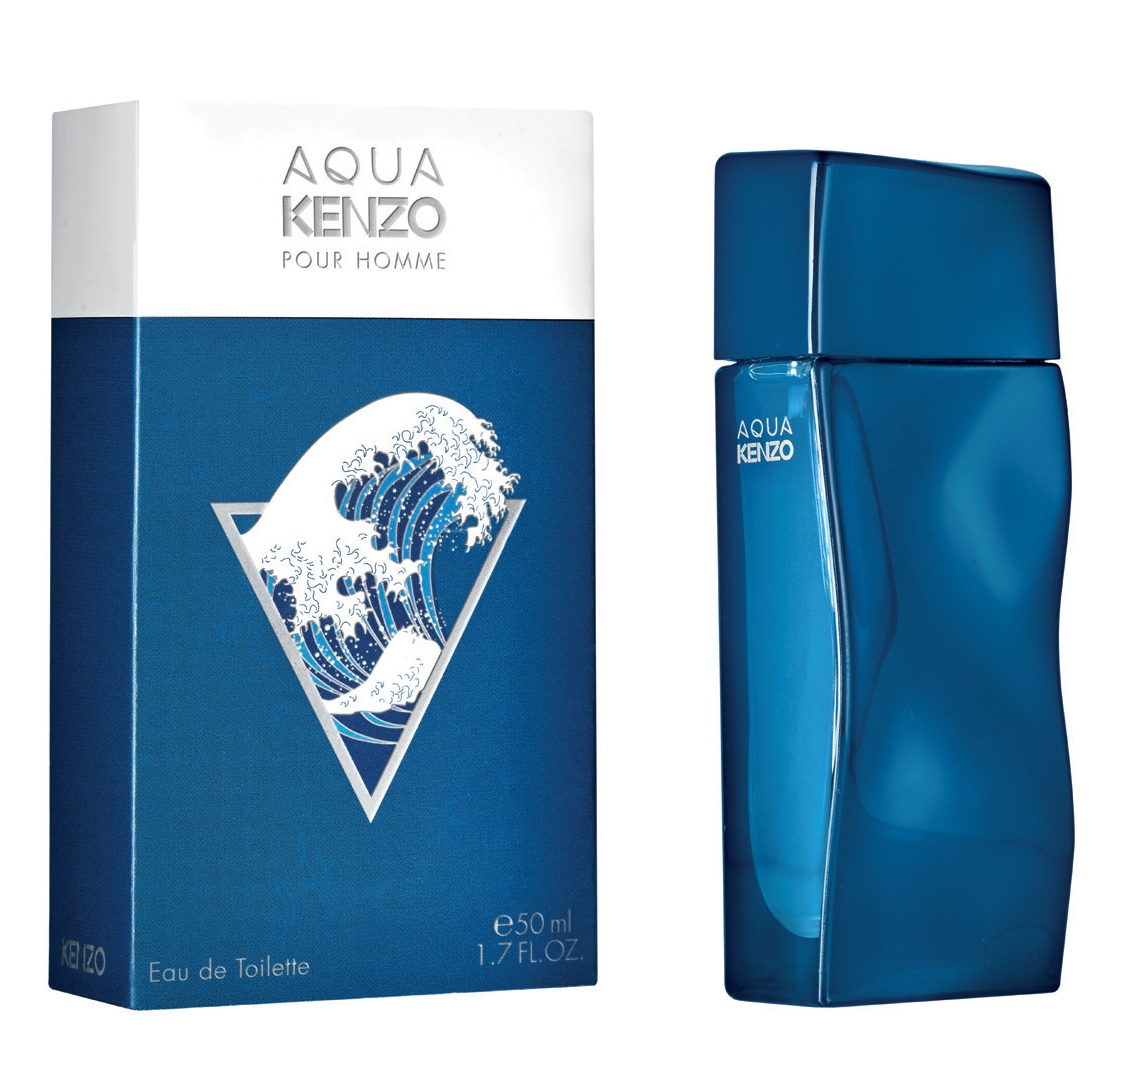 601ce63f Aqua Kenzo pour Homme Kenzo cologne - a new fragrance for men 2018